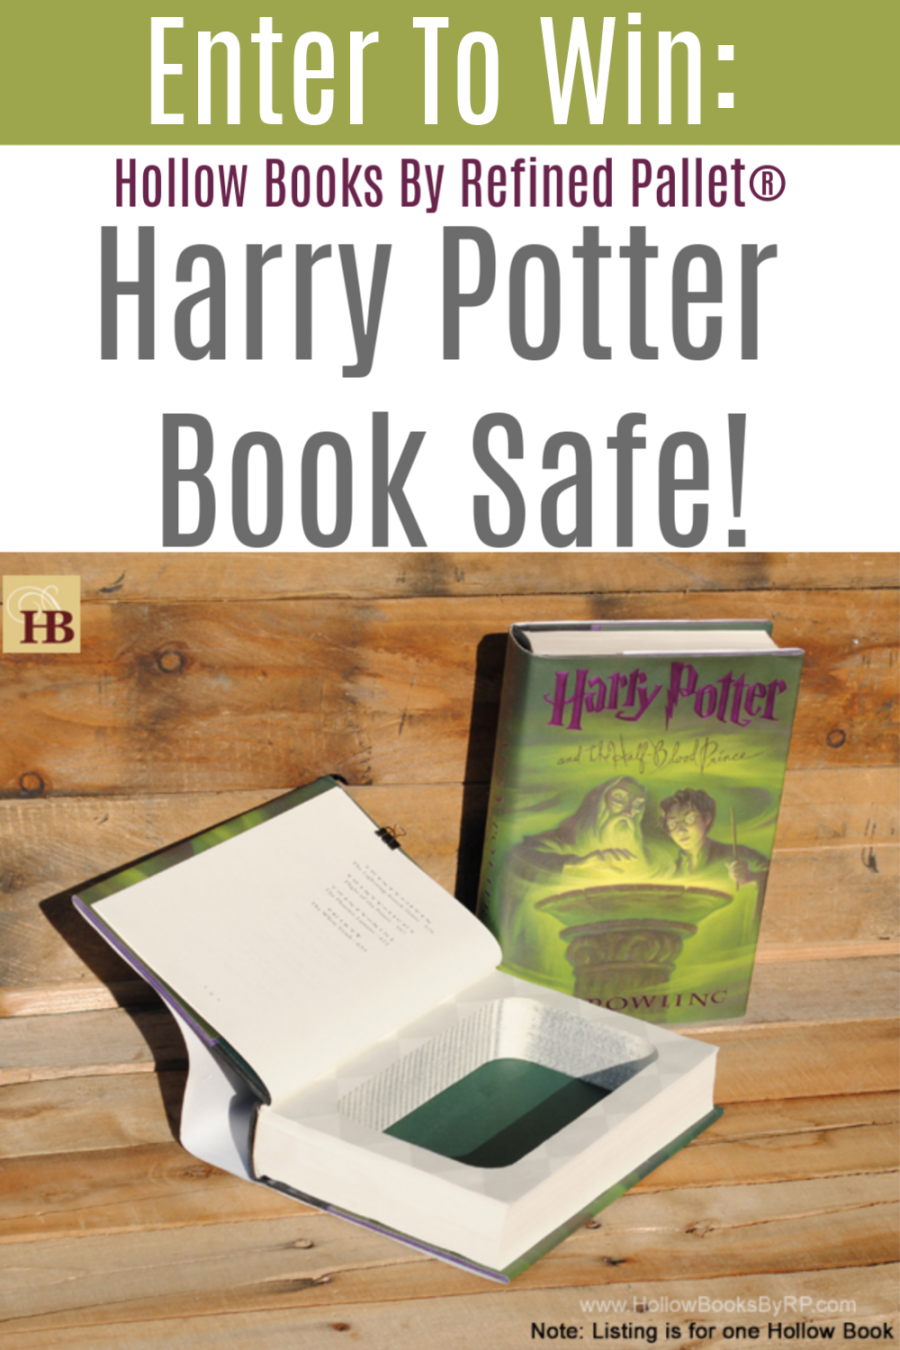 Hollow Books By Refined Pallet® {Harry Potter Book Safe Giveaway!}